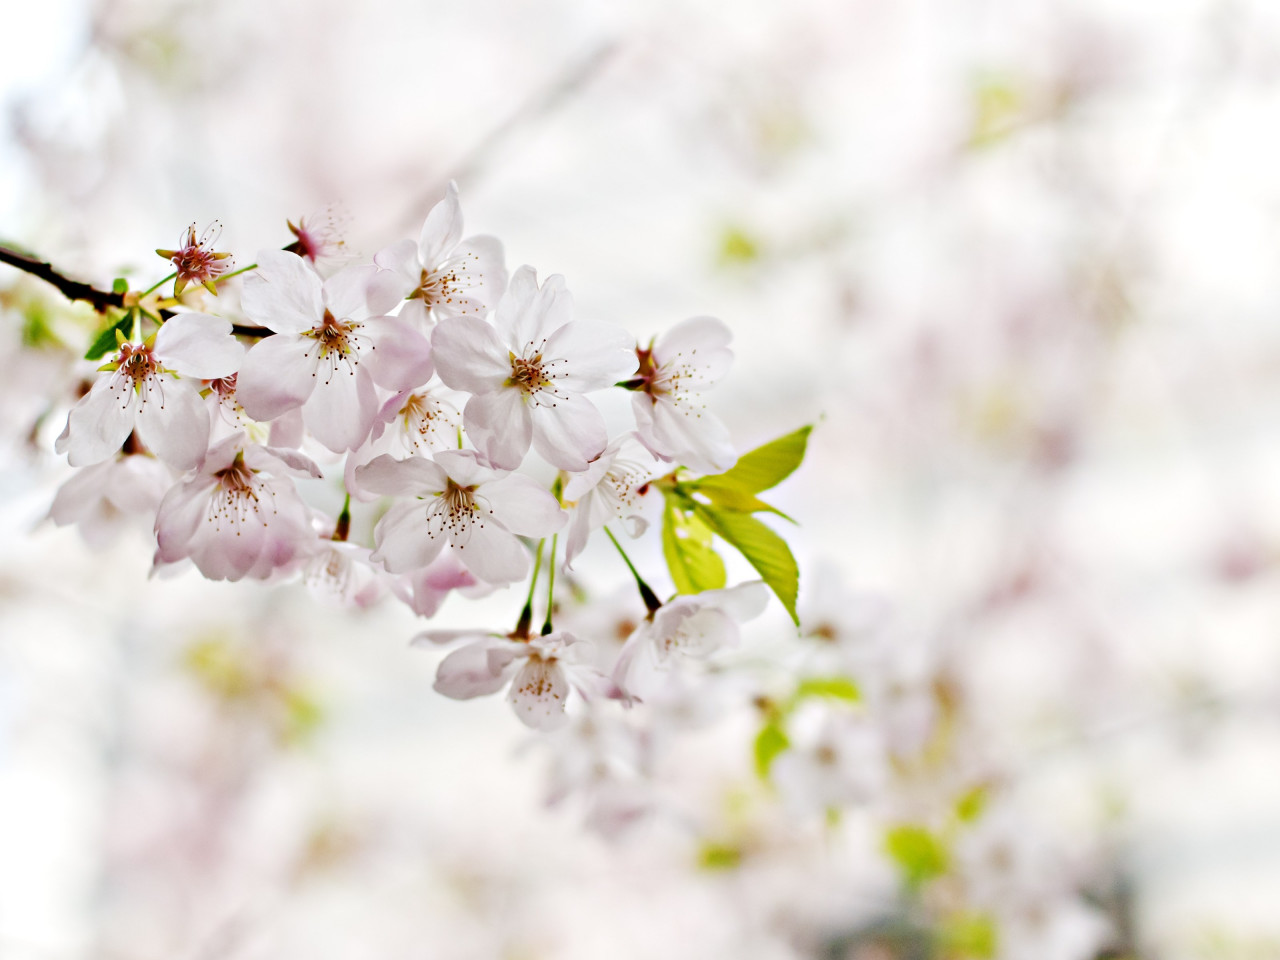 Cherry Blossoms. Flowers of Spring wallpaper 1280x960